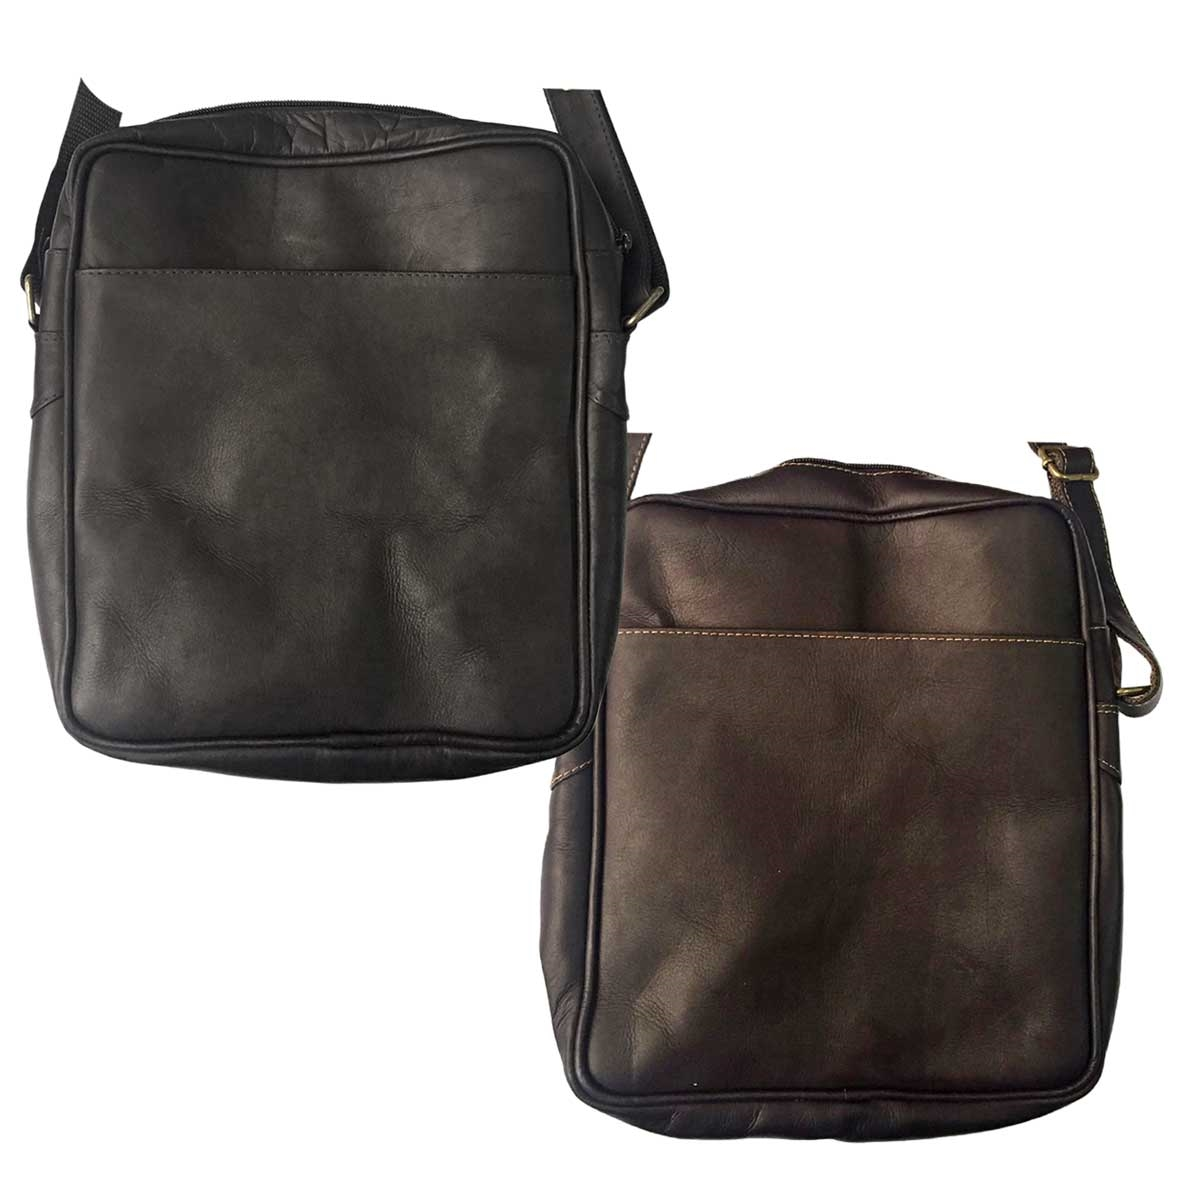 Leather Cross-Body Courier & Messenger Bag for Men & Women